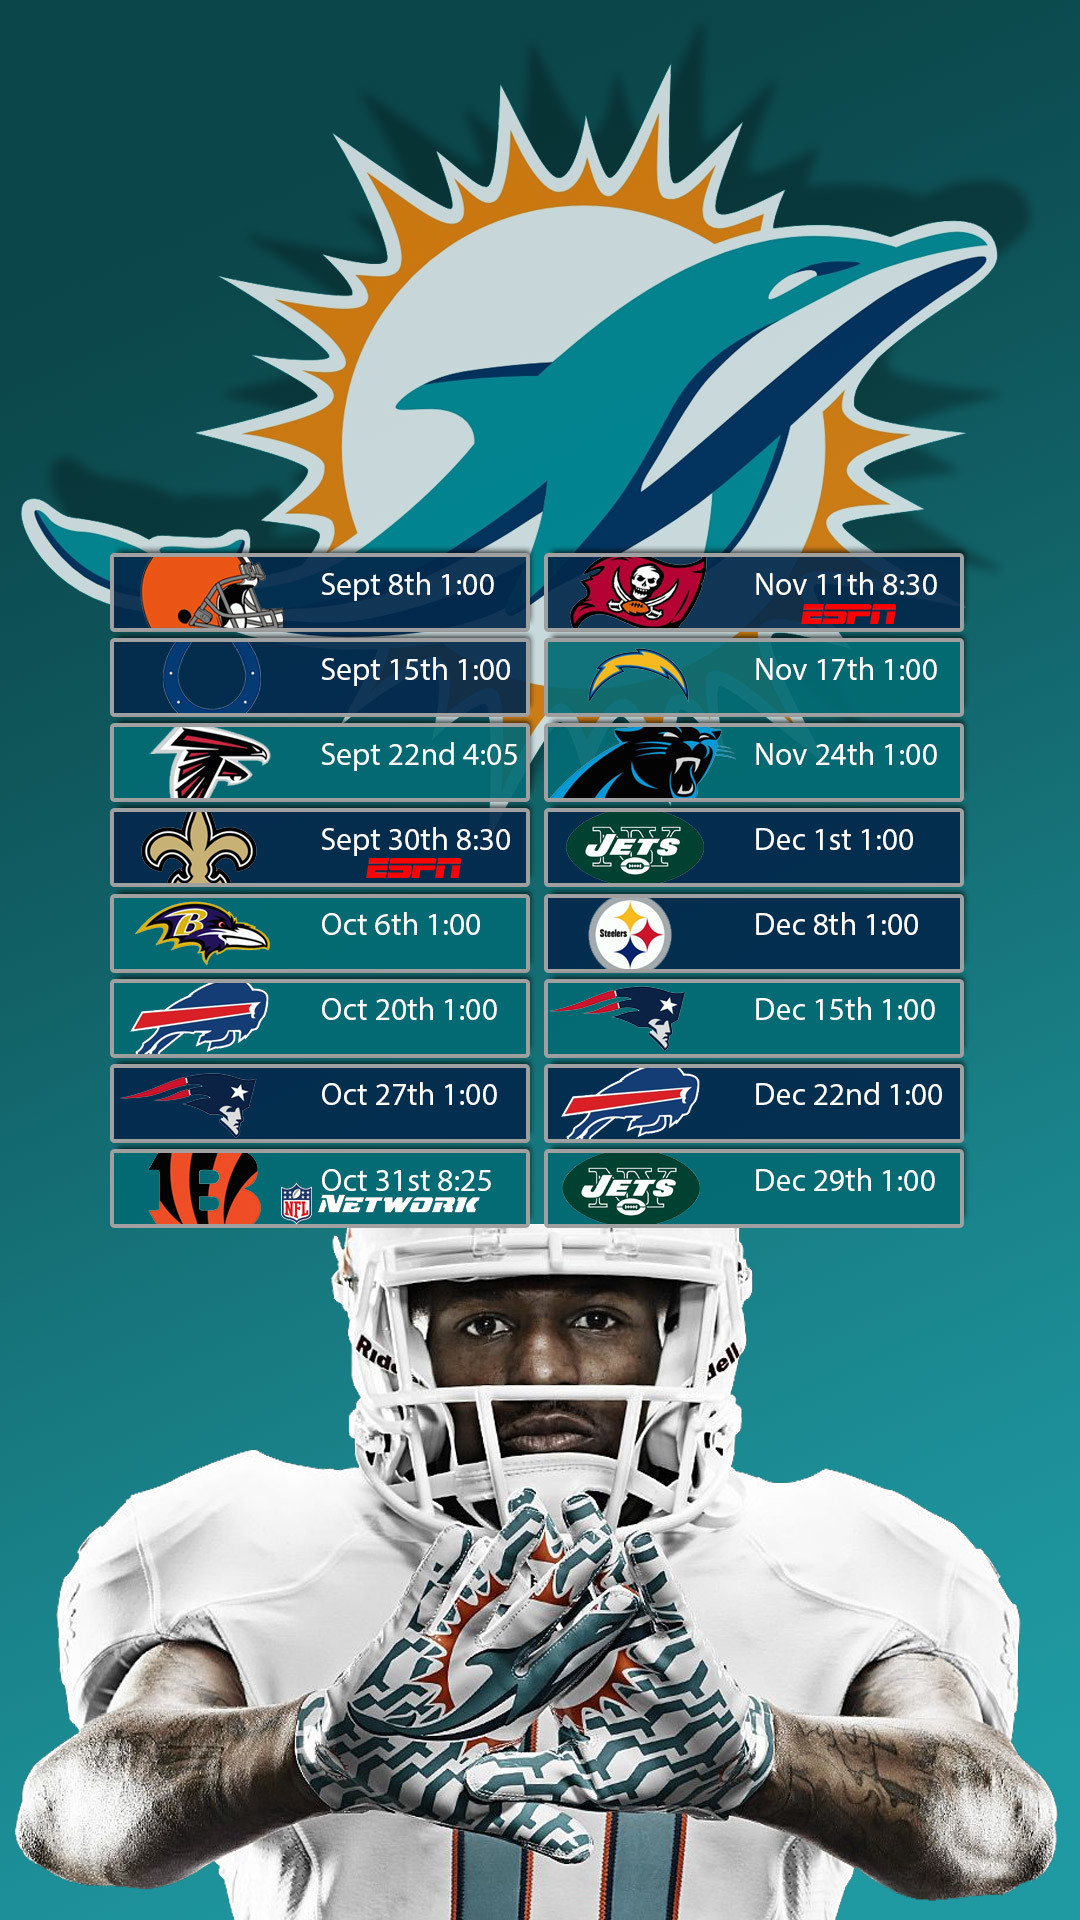 Lock Screen wallpaper with schedule for Samsung Galaxy phone I made .